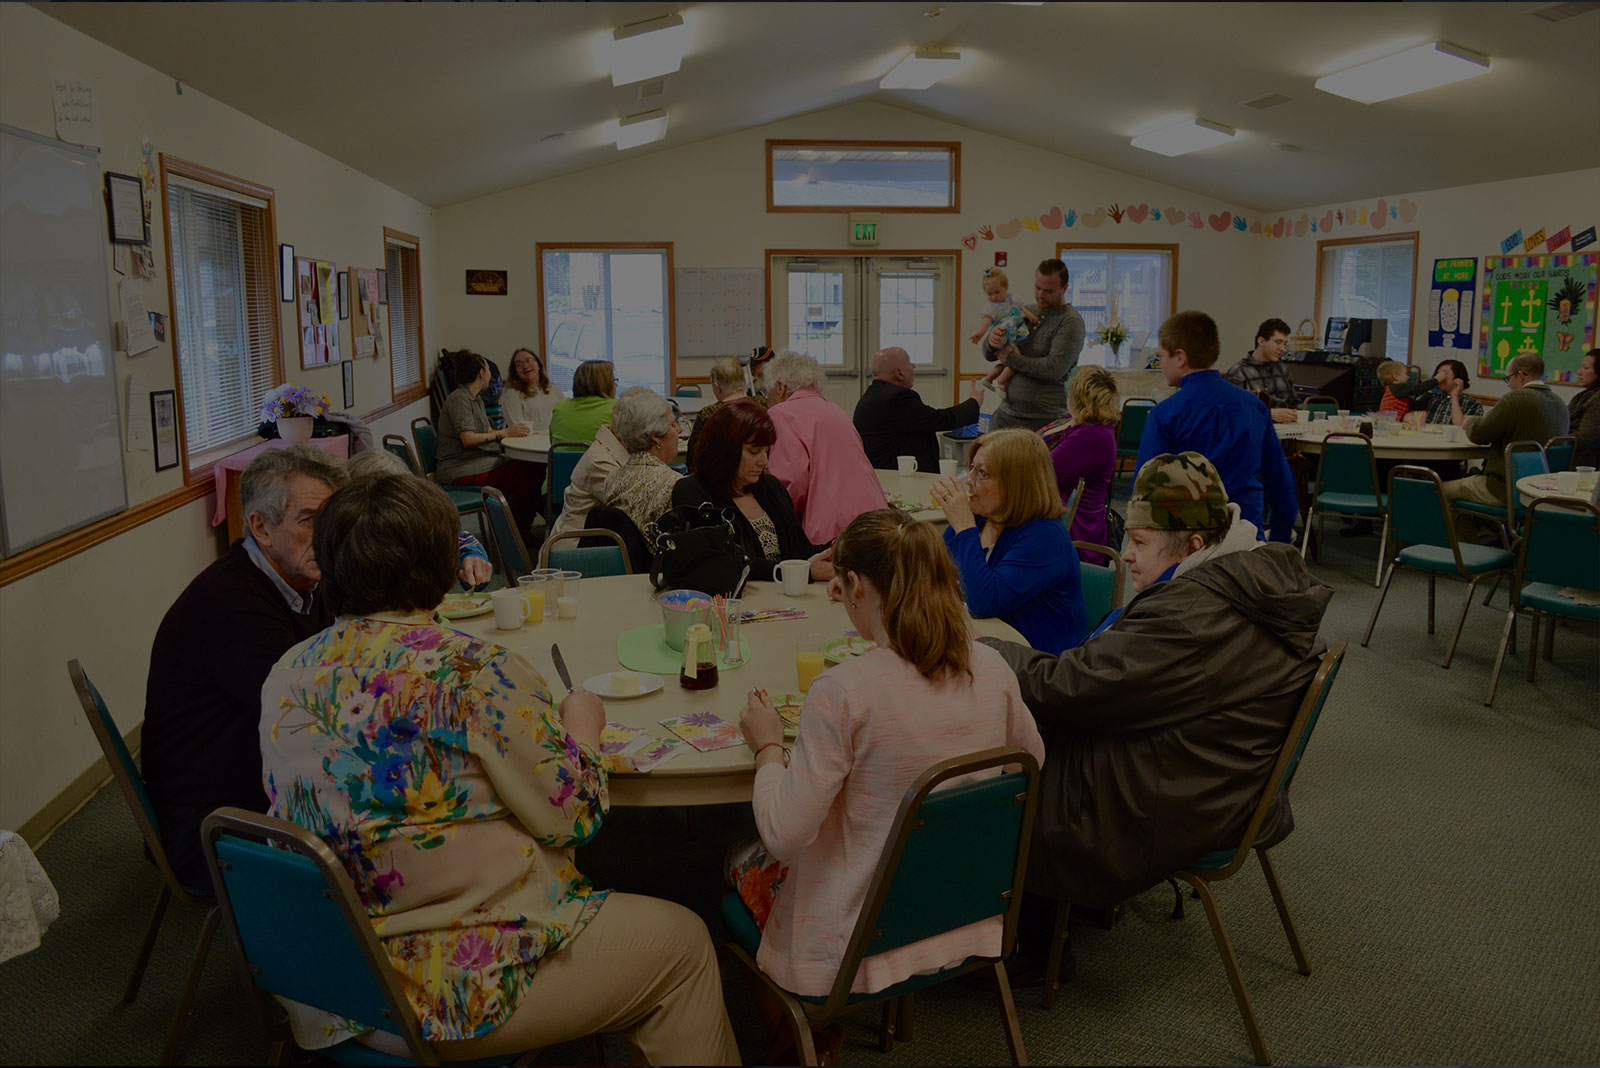 Community meal at Faith Lutheran in Everett, WA